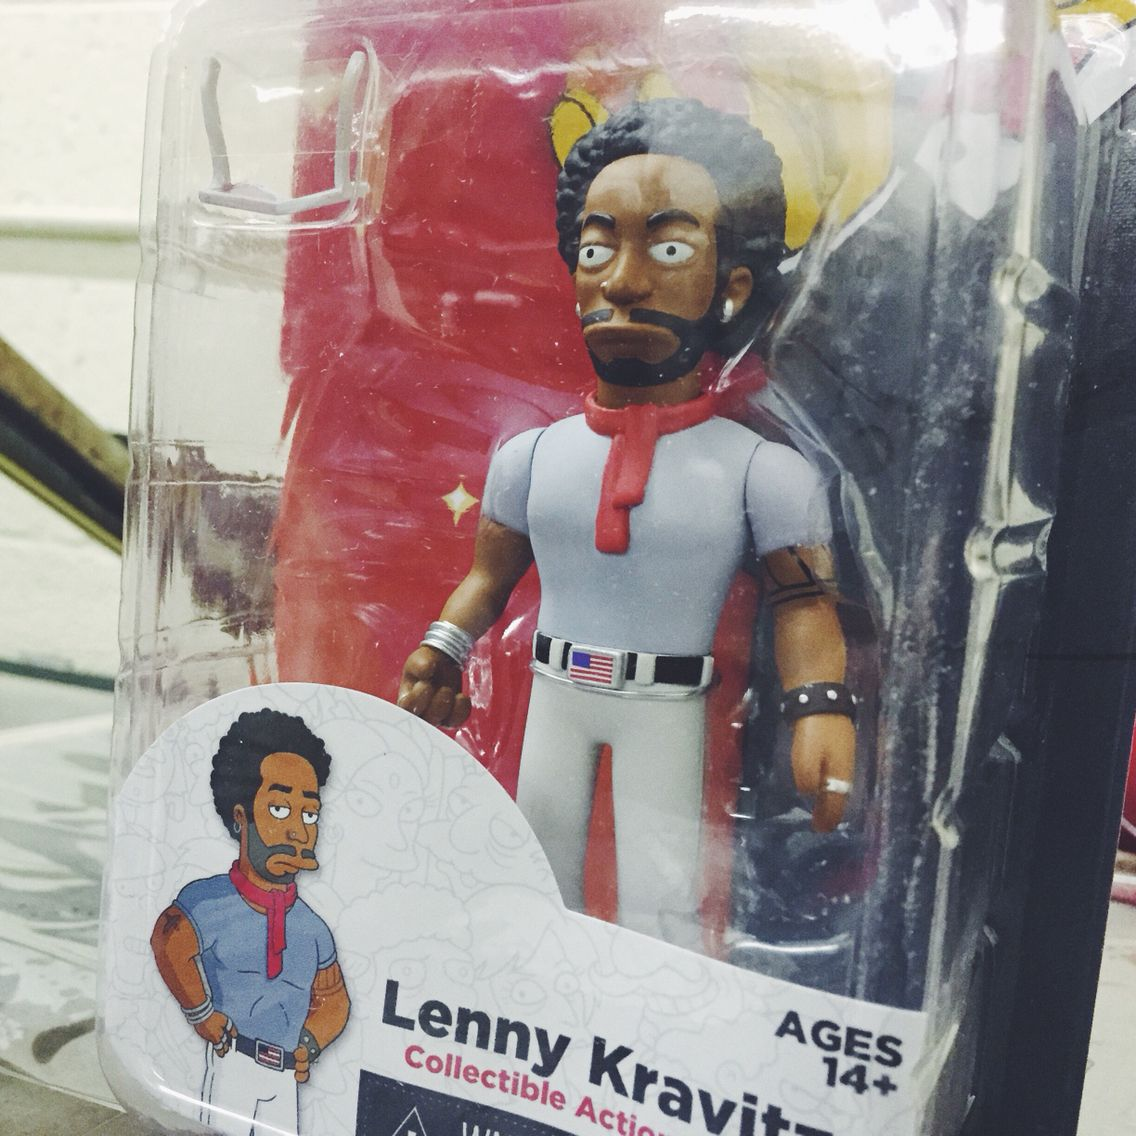 It S Lenny Kravitz As He Appeared On The Simpsons Available Now At Zia Vinyl Figures The Simpsons Action Figures